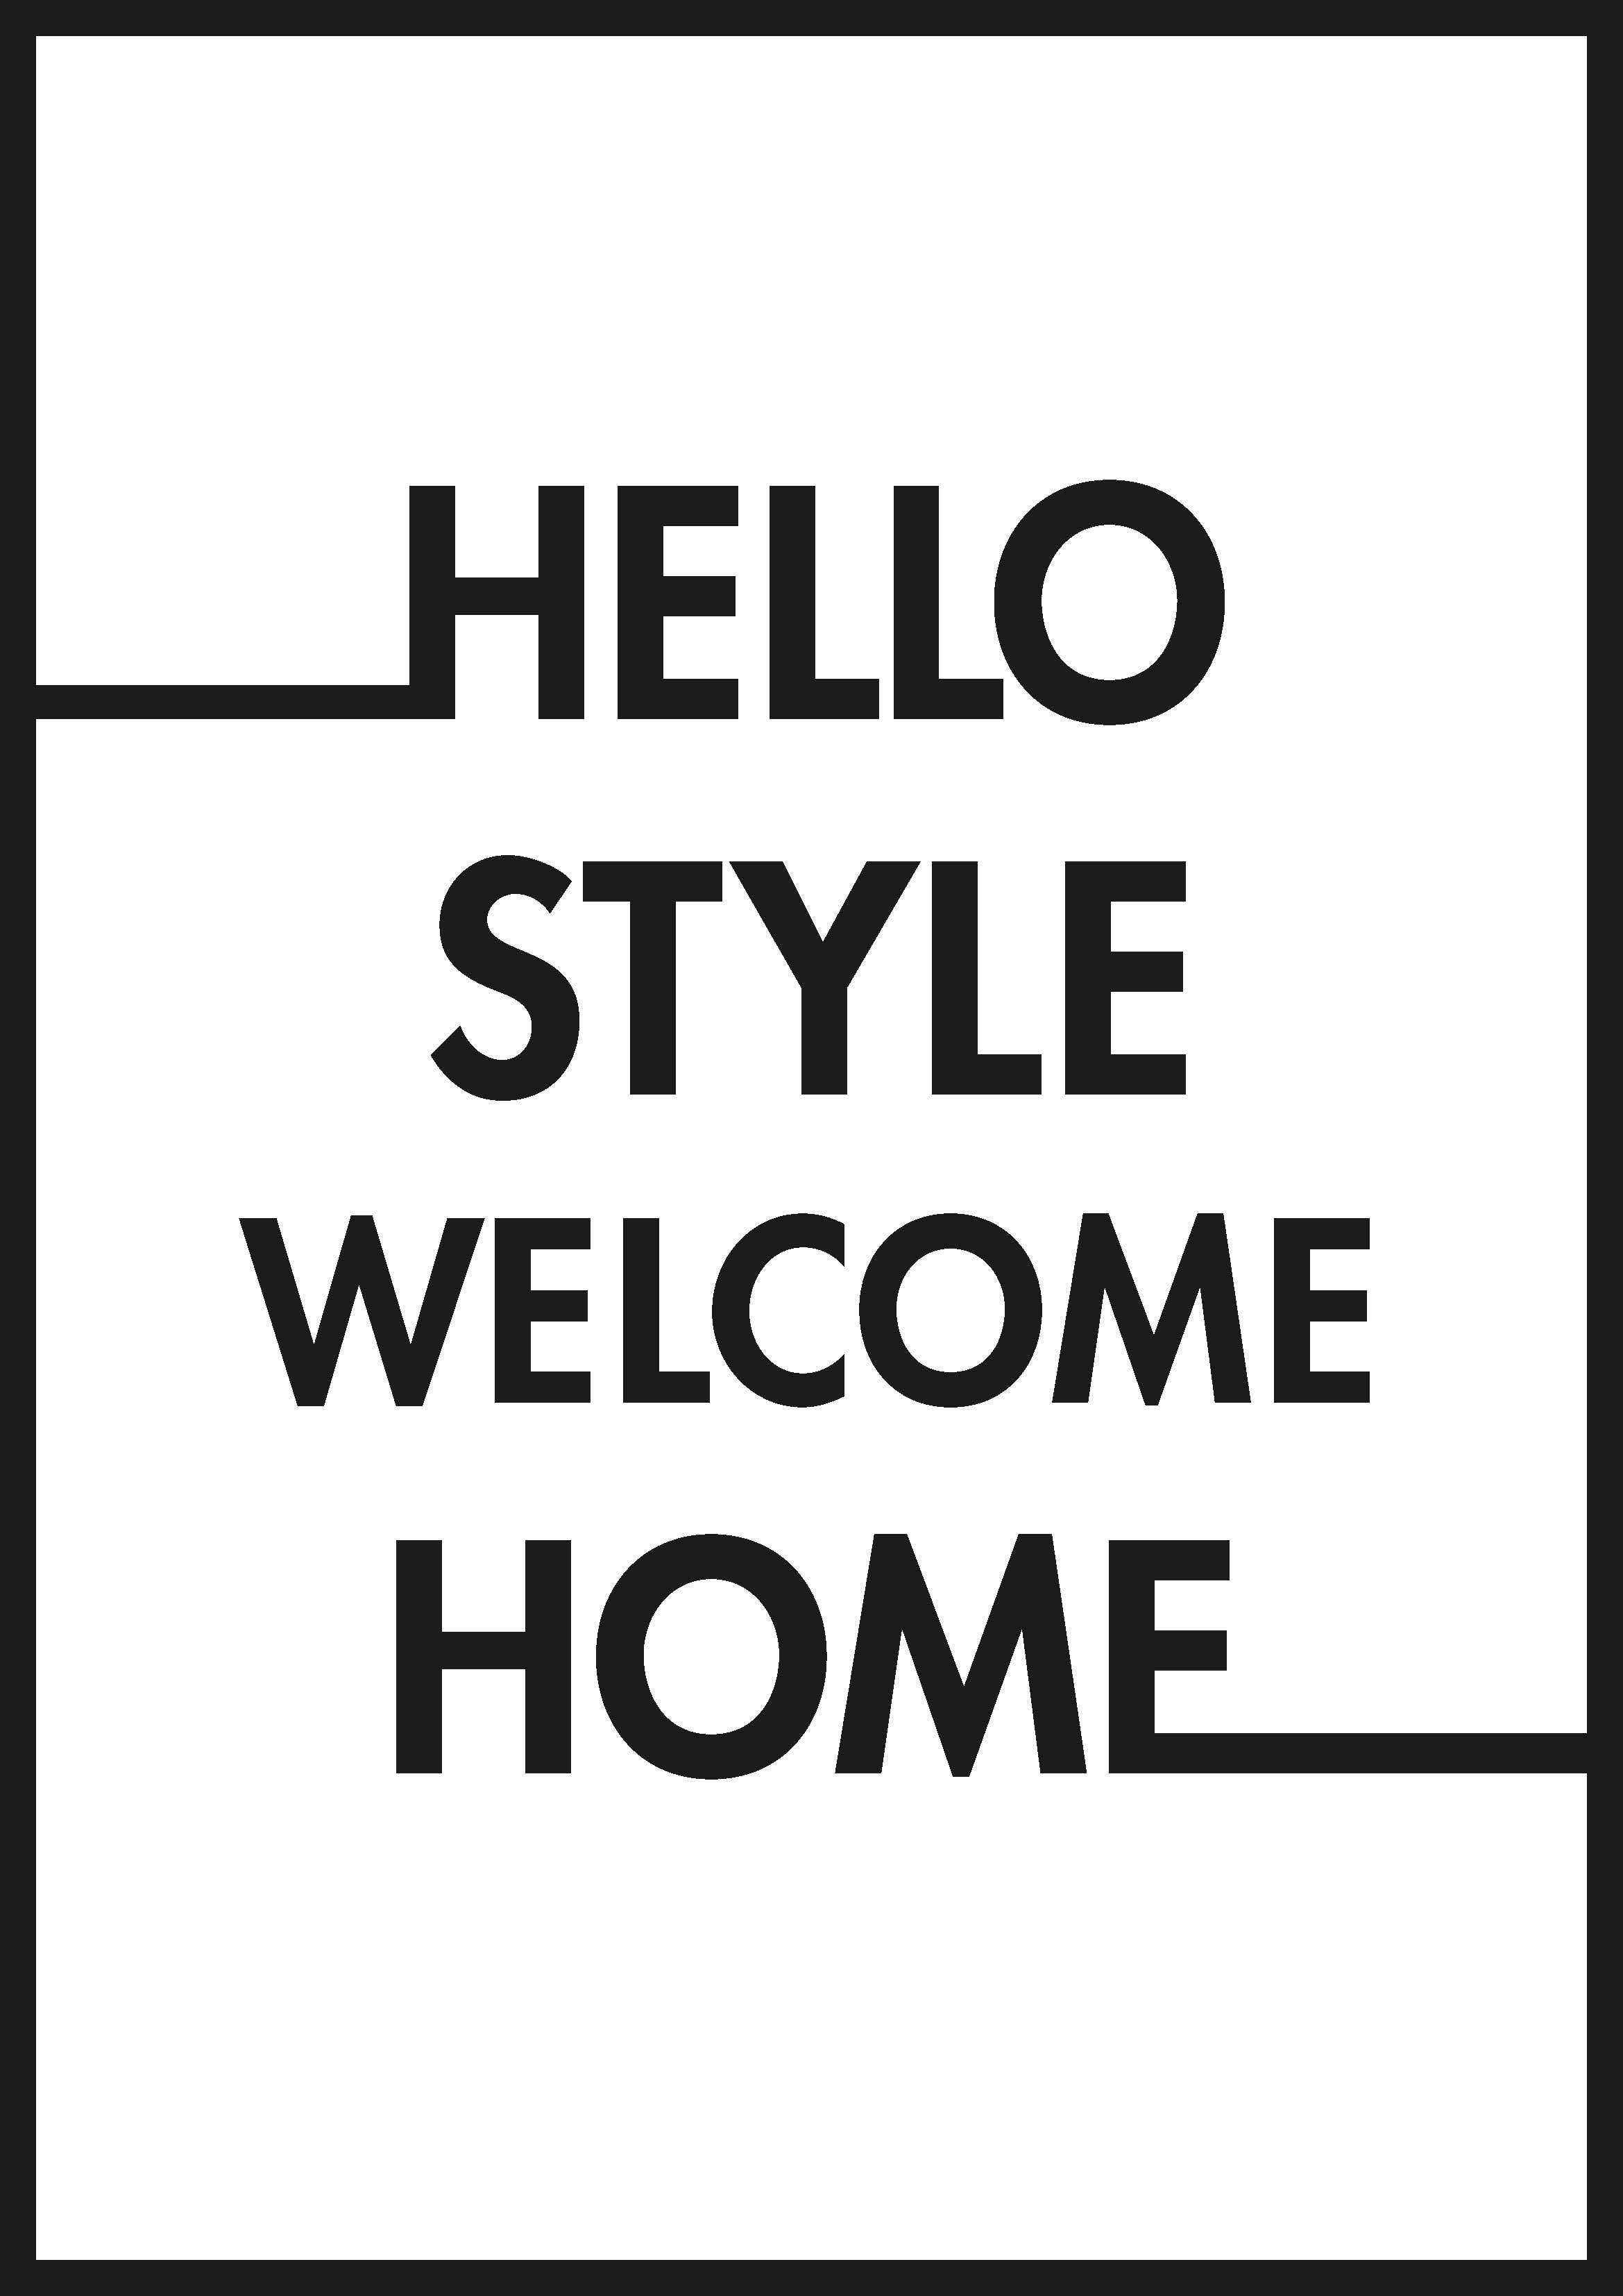 free printable typo poster hello style. Black Bedroom Furniture Sets. Home Design Ideas